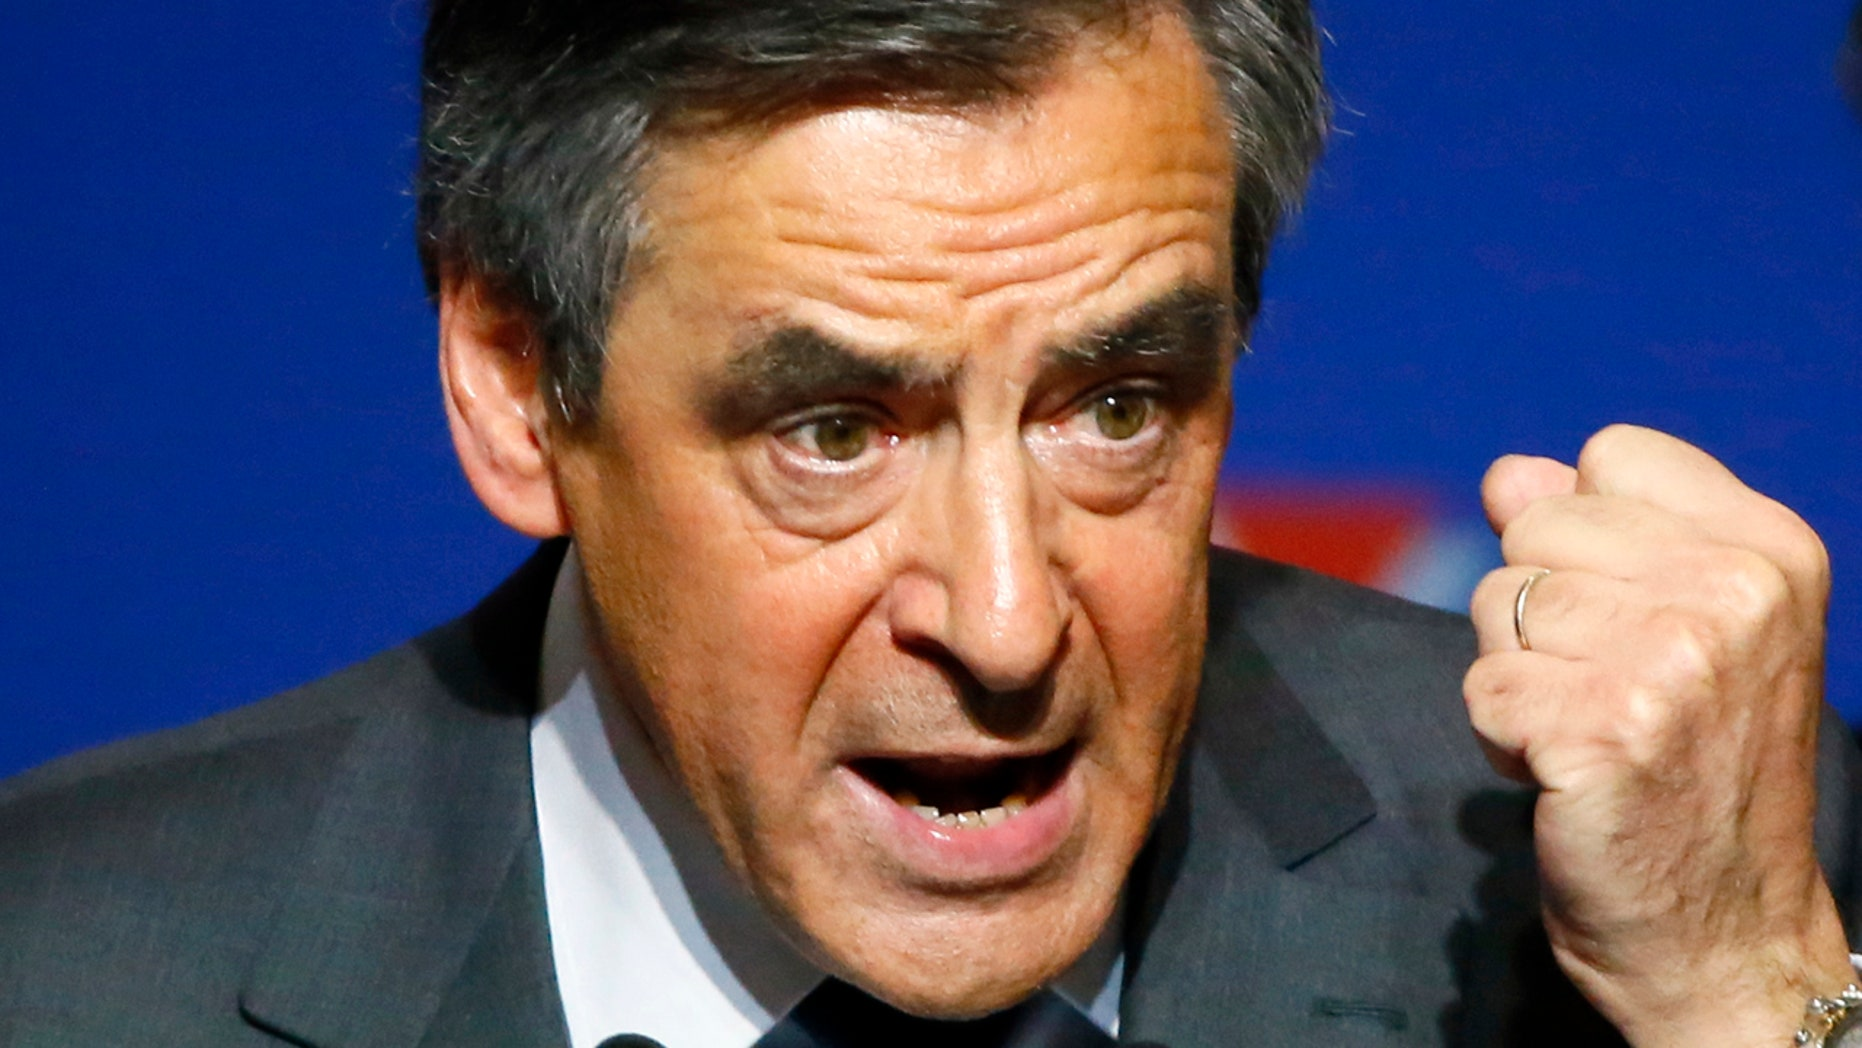 Francois Fillon speaks at a rally in Paris.